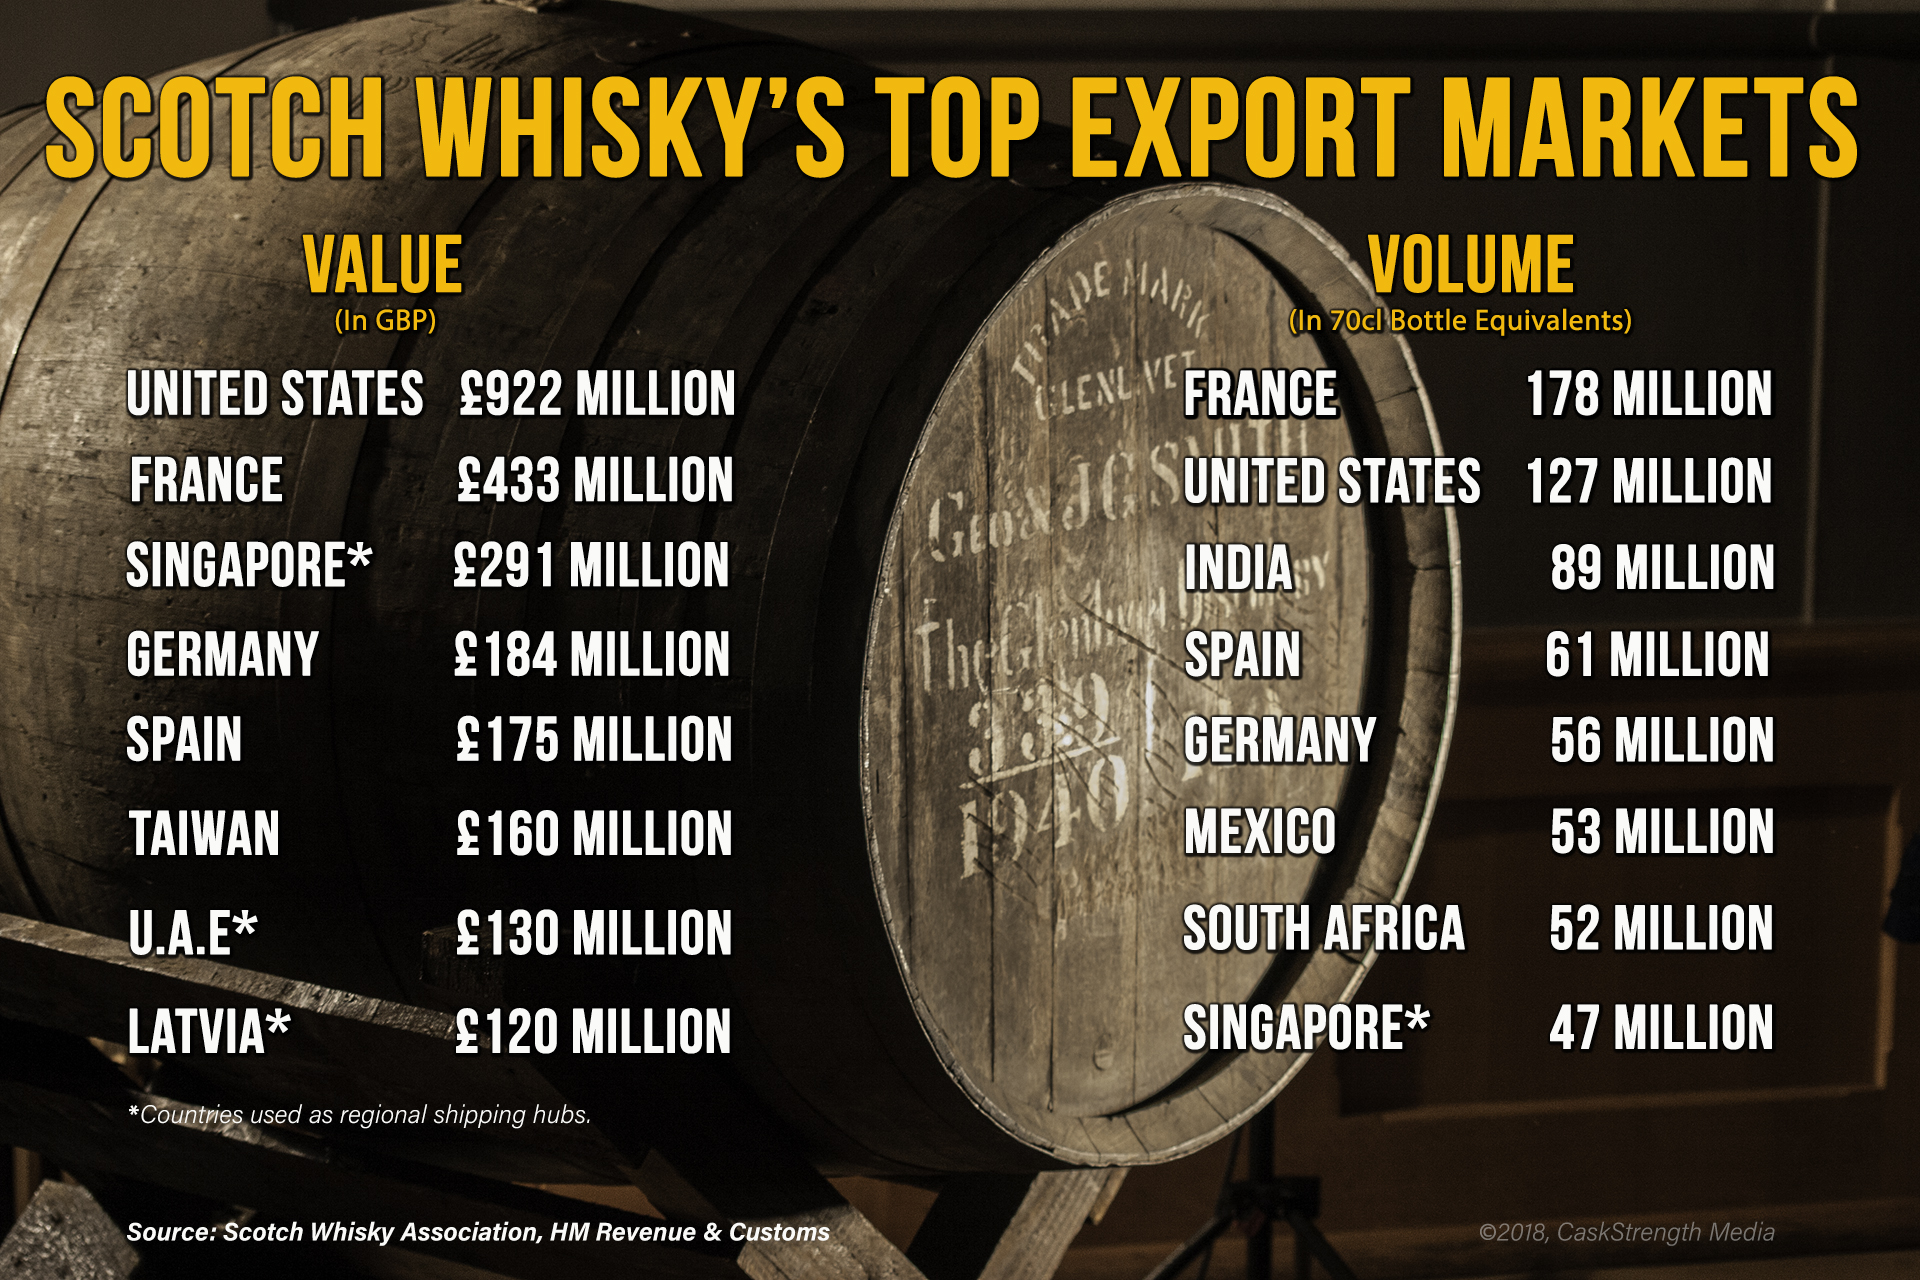 2017 Scotch Whisky Export Markets. ©2018, Mark Gillespie/CaskStrength Media.